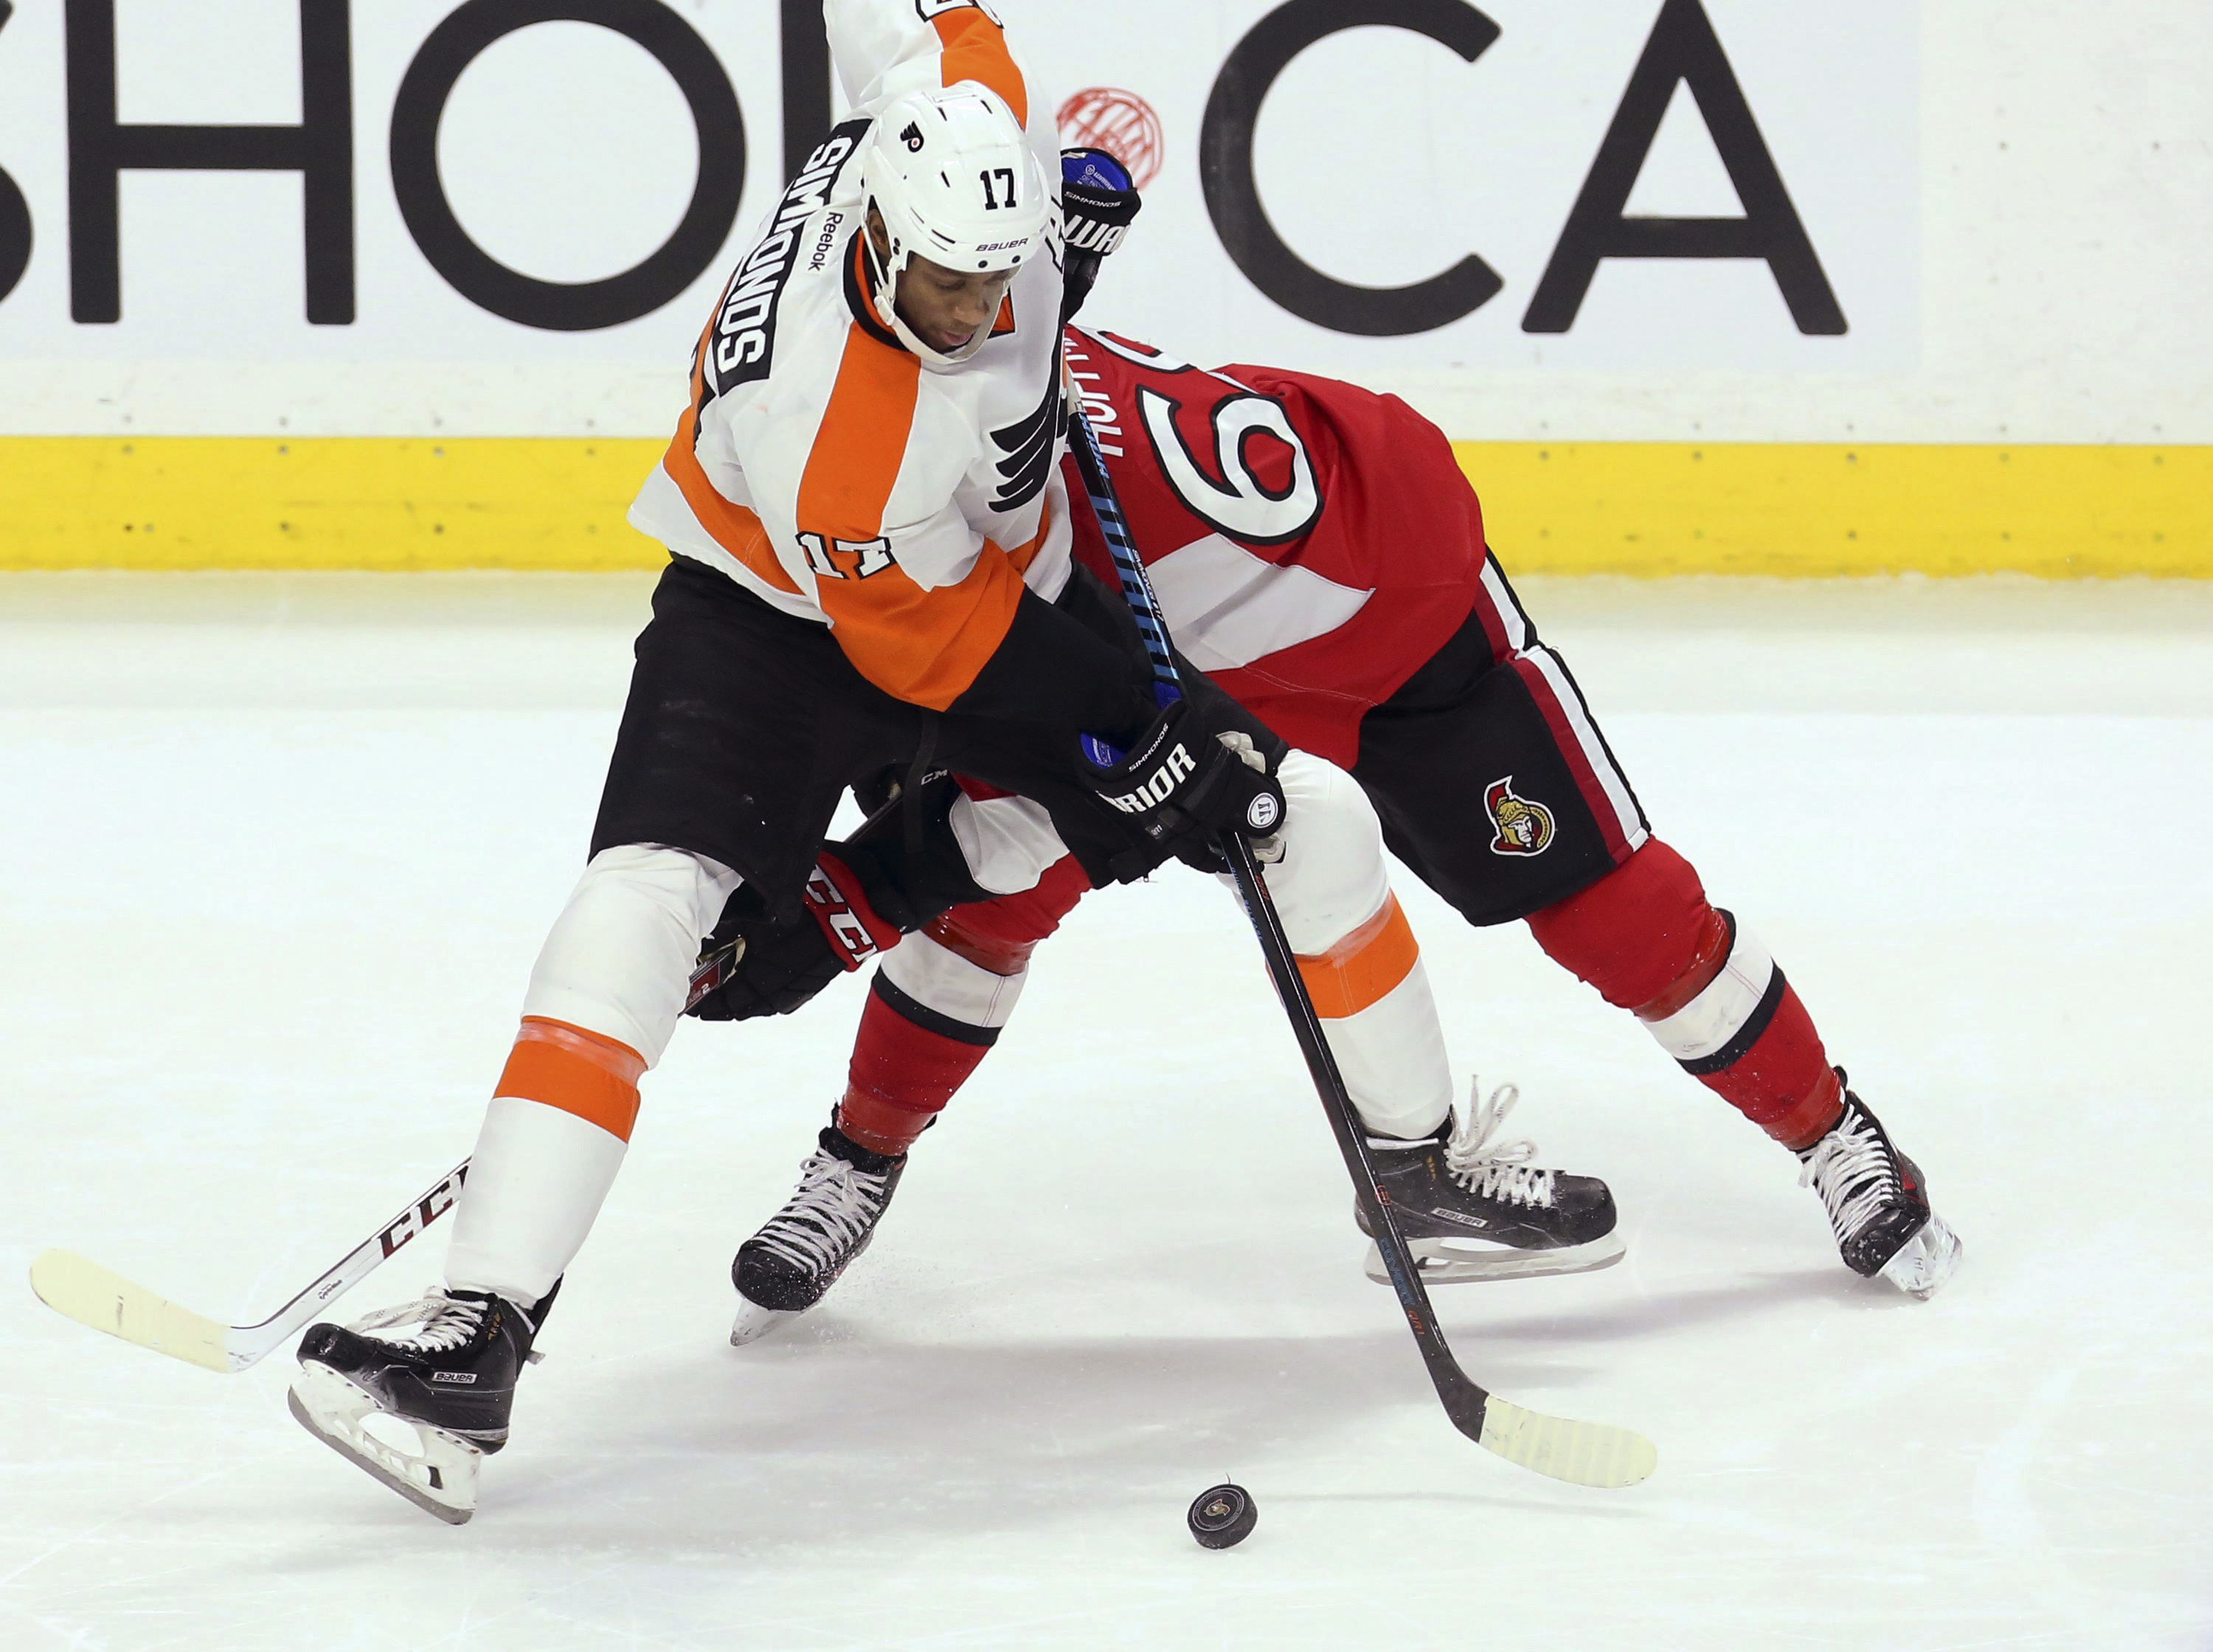 Philadelphia Flyers' Wayne Simmonds (17) fights for the puck with Ottawa Senators' Mike Hoffman (68) during the second period of an NHL hockey game Saturday, Nov. 21, 2015, in Ottawa, Ontario. (Fred Chartrand/The Canadian Press via AP)